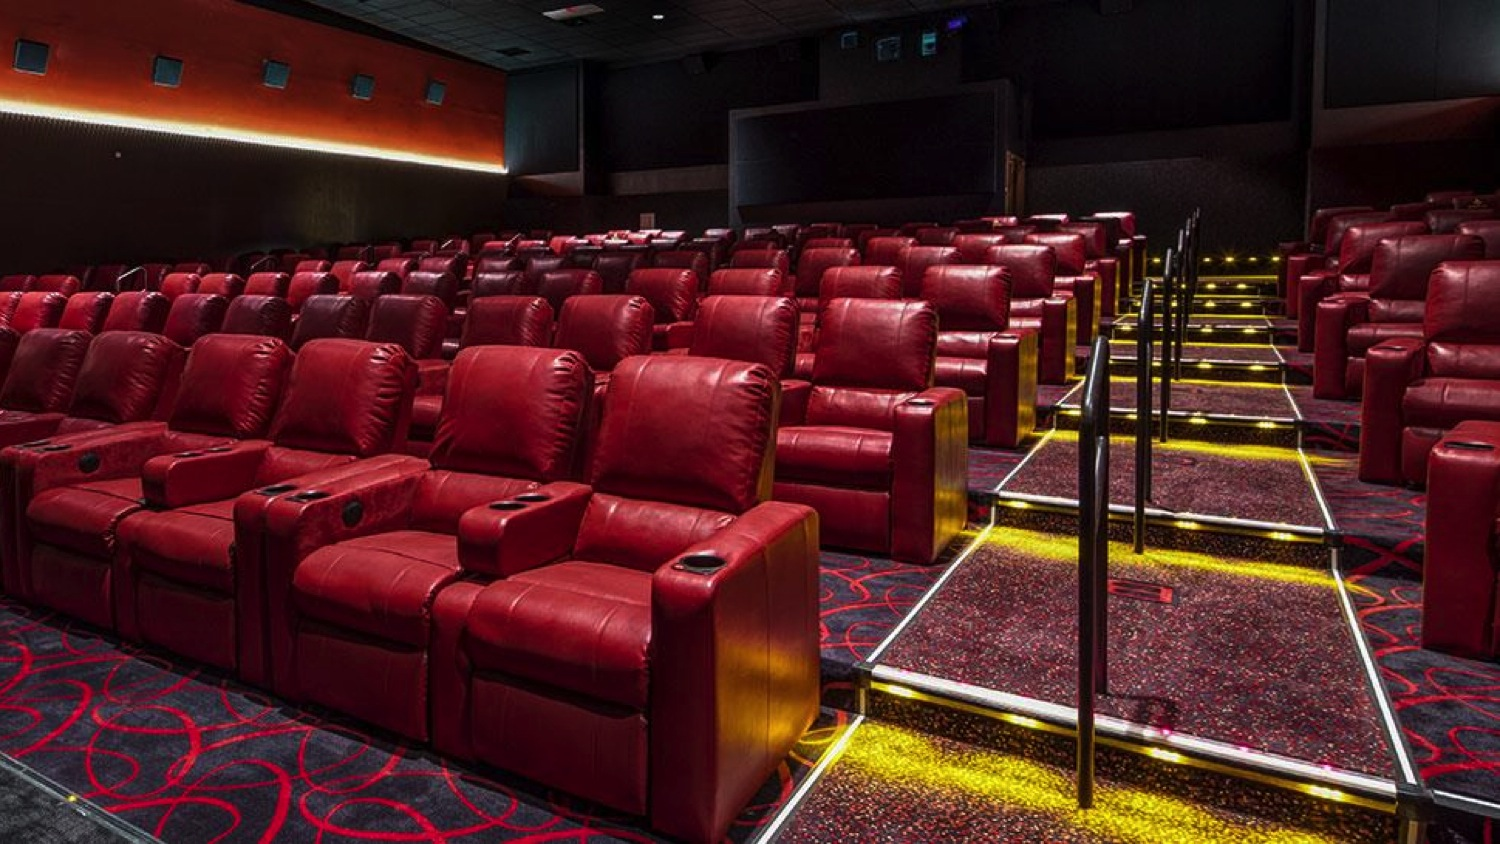 Wondrous Amc Movie Theaters Are Trying To Increase Sales With Pabps2019 Chair Design Images Pabps2019Com